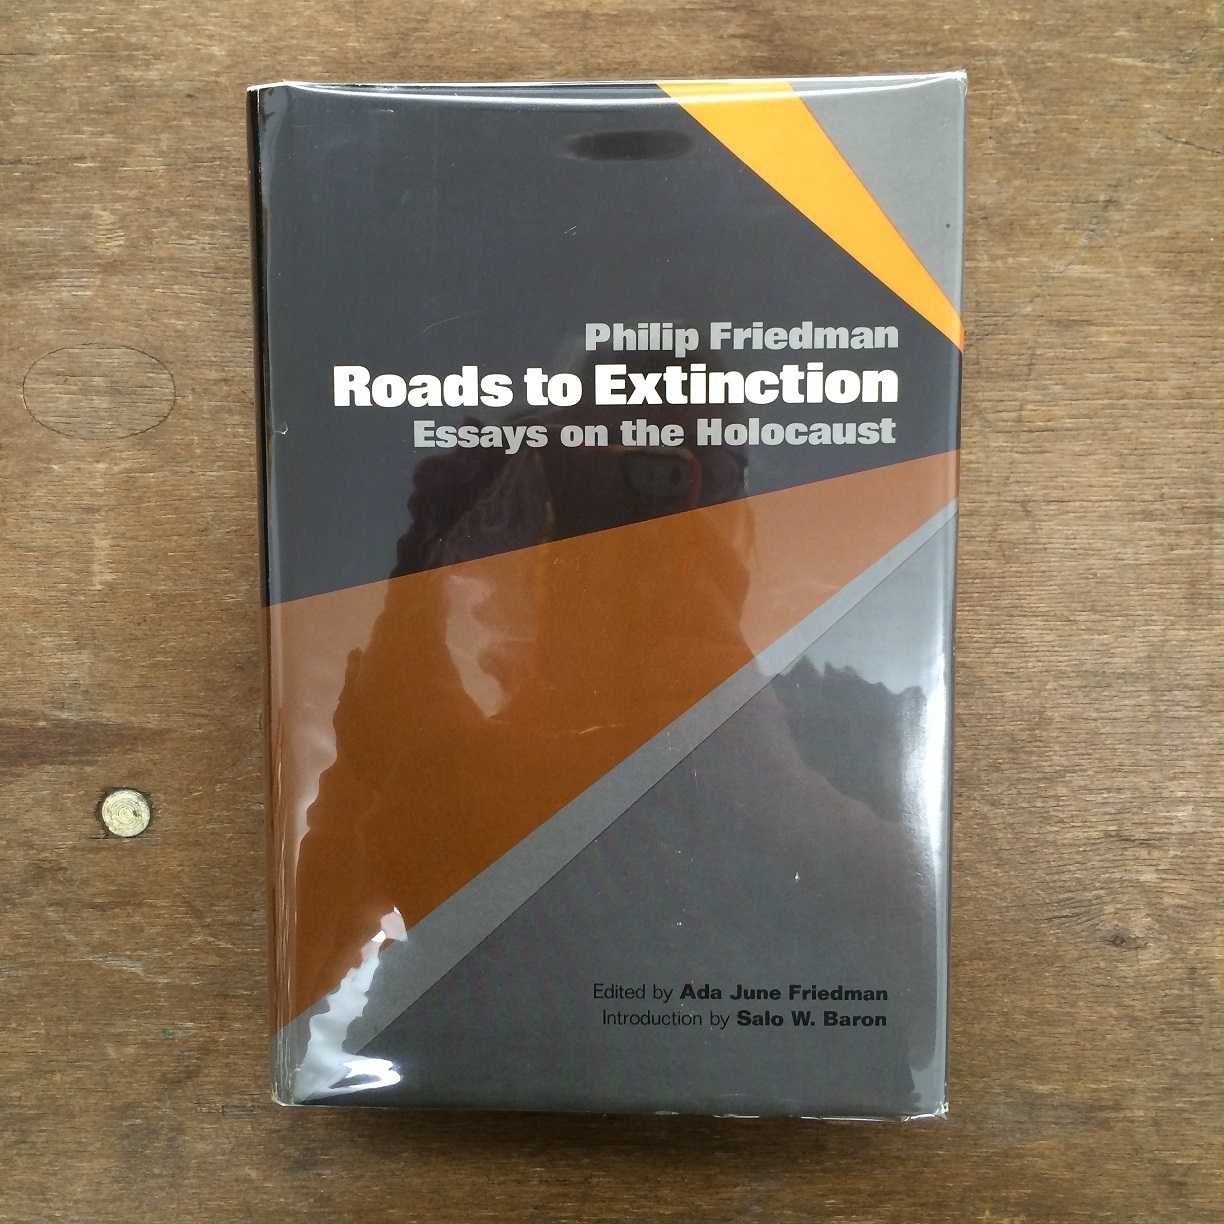 roads to extinction essays on the holocaust philip friedman roads to extinction essays on the holocaust philip friedman 9780827601703 com books